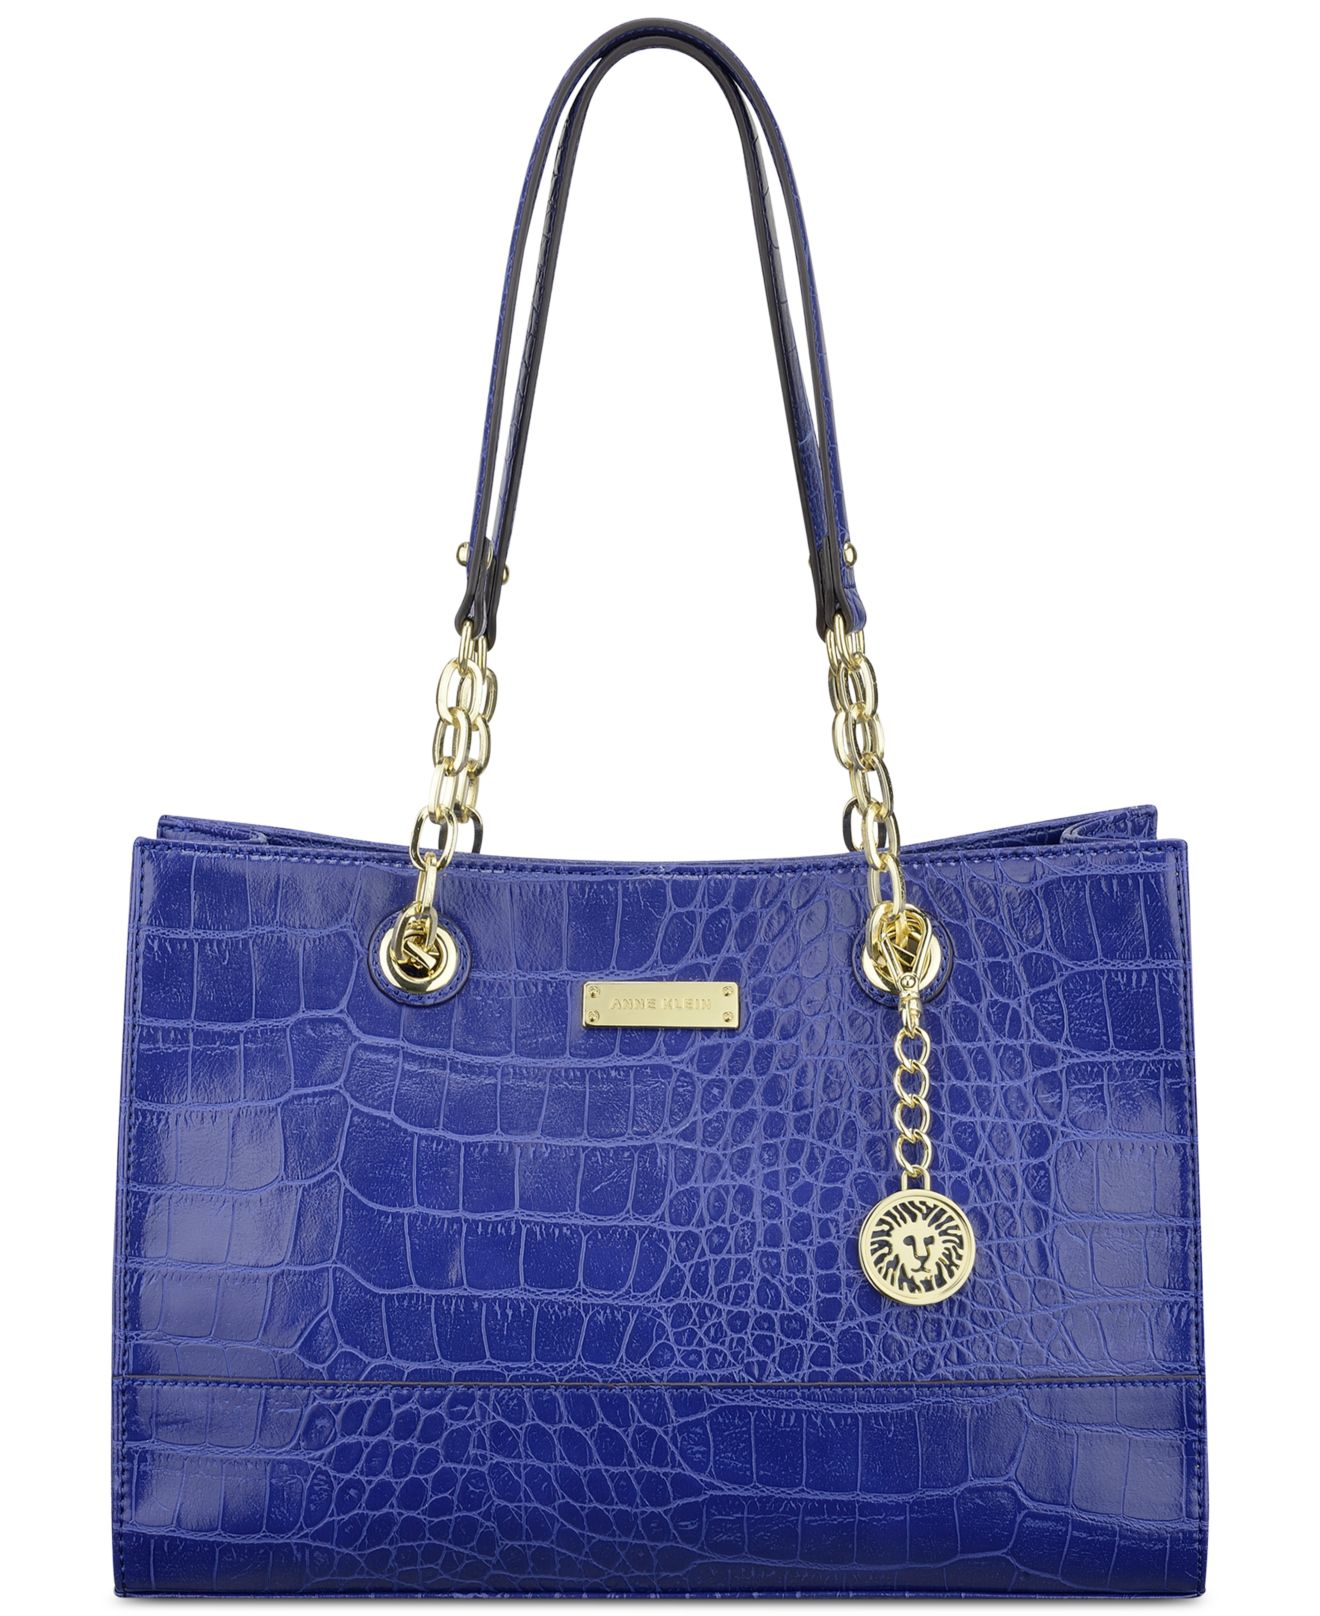 anne klein coast is clear small chain tote in blue lyst. Black Bedroom Furniture Sets. Home Design Ideas